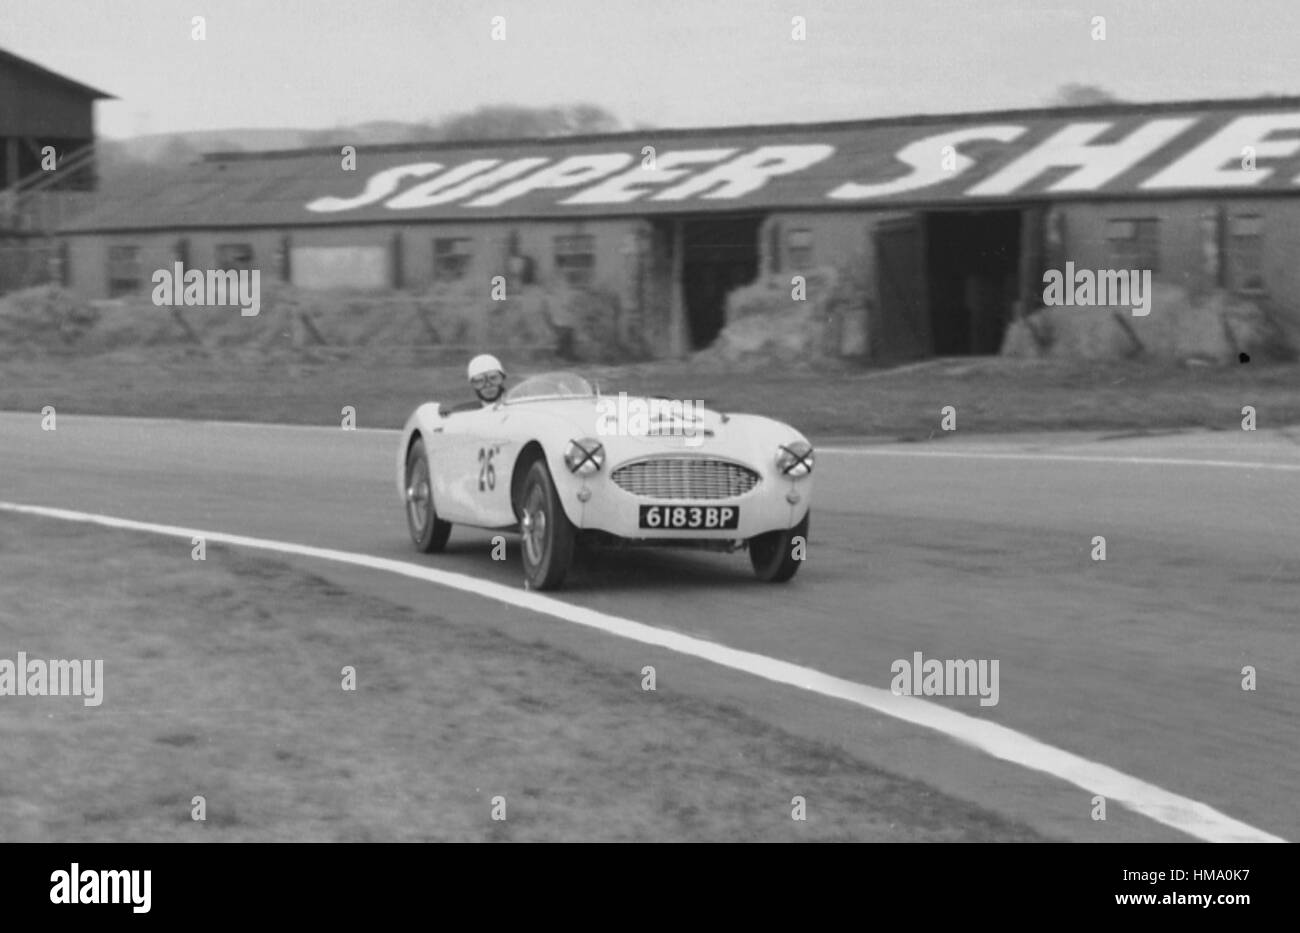 Goodwood 14. März 1959 Austin - Healey 100-6 Stockbild